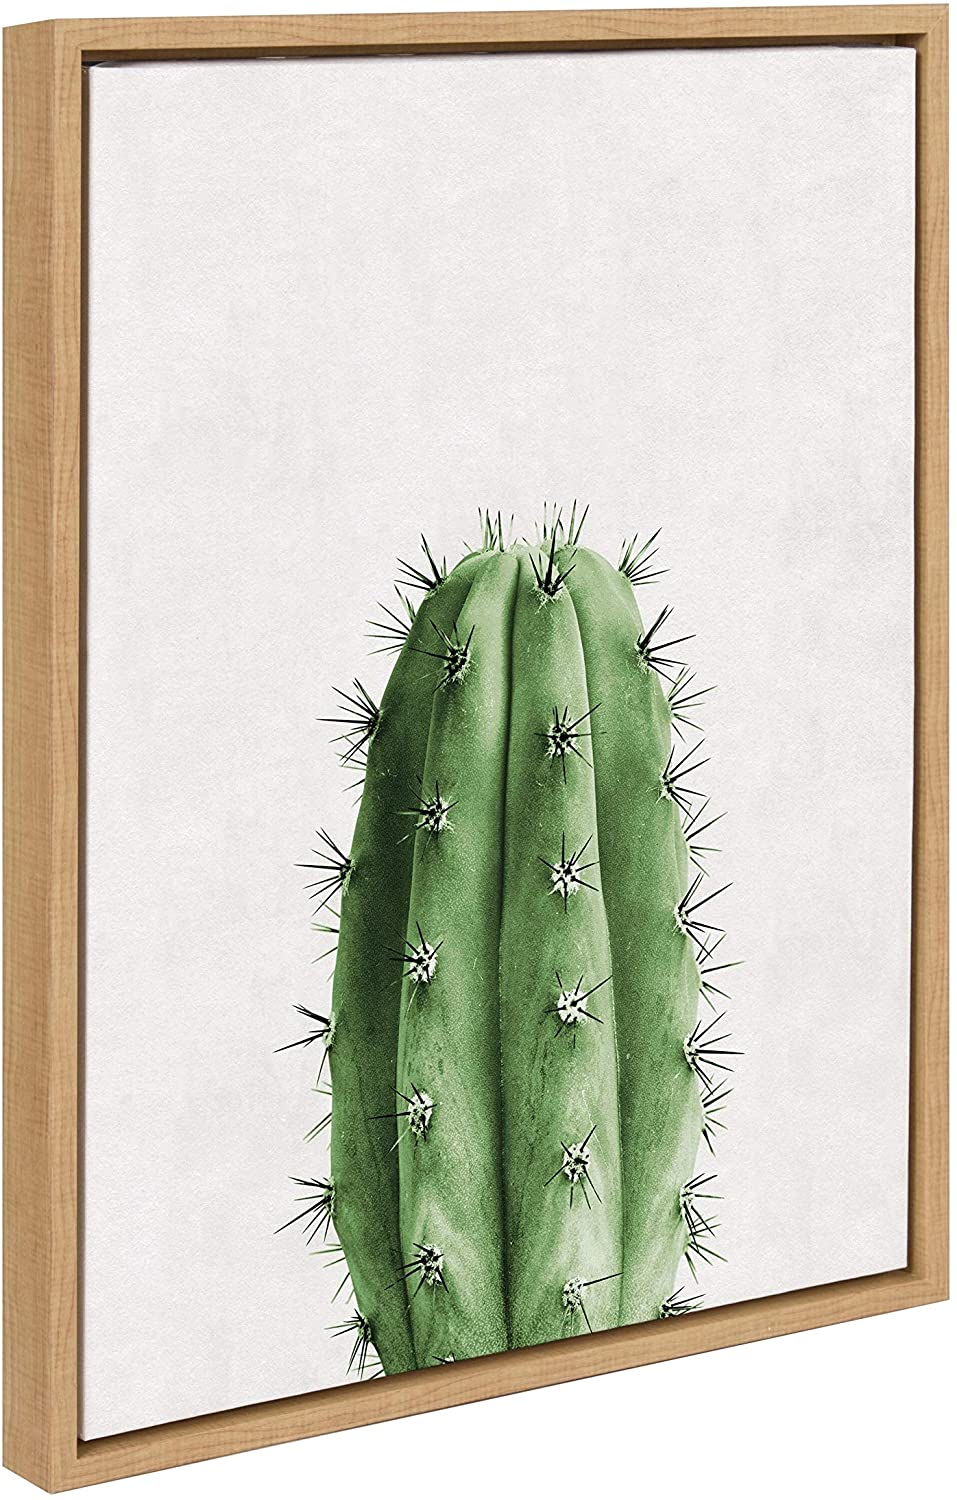 Cactus Vertical Framed Canvas Wall Art Natural 18 X 24 Modern Contemporary Rectangle